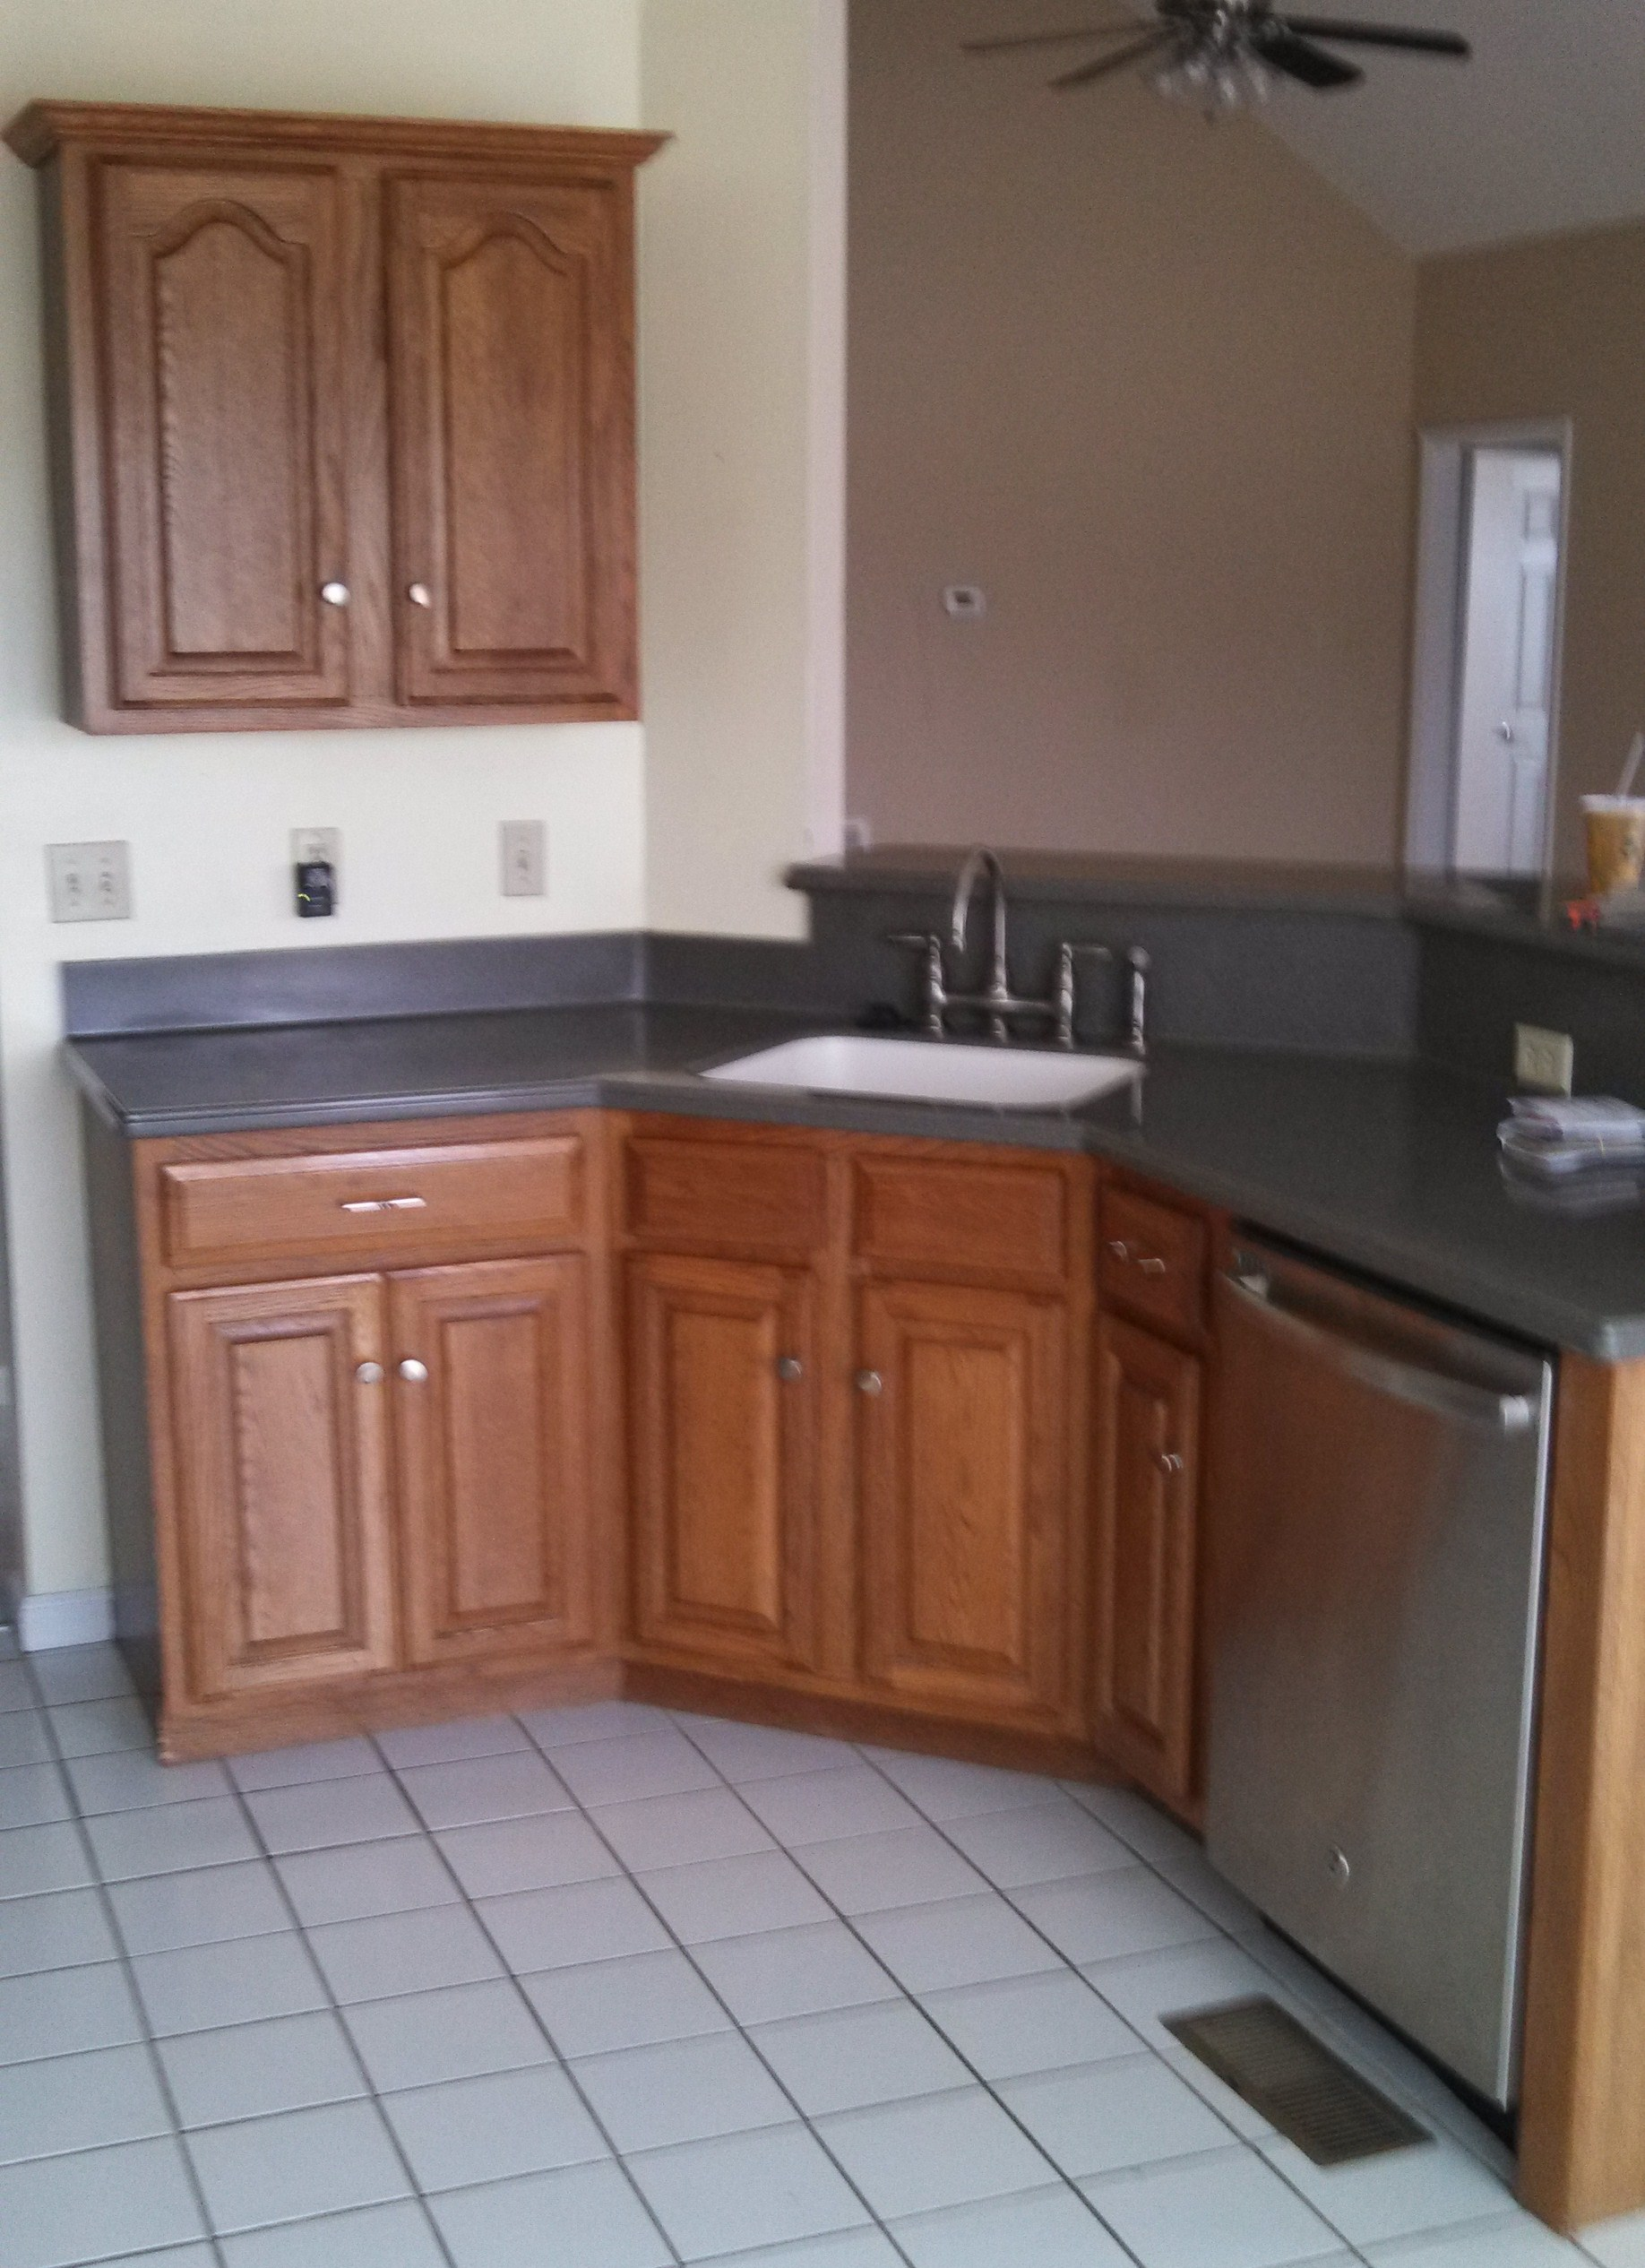 cabinets2_before.jpg